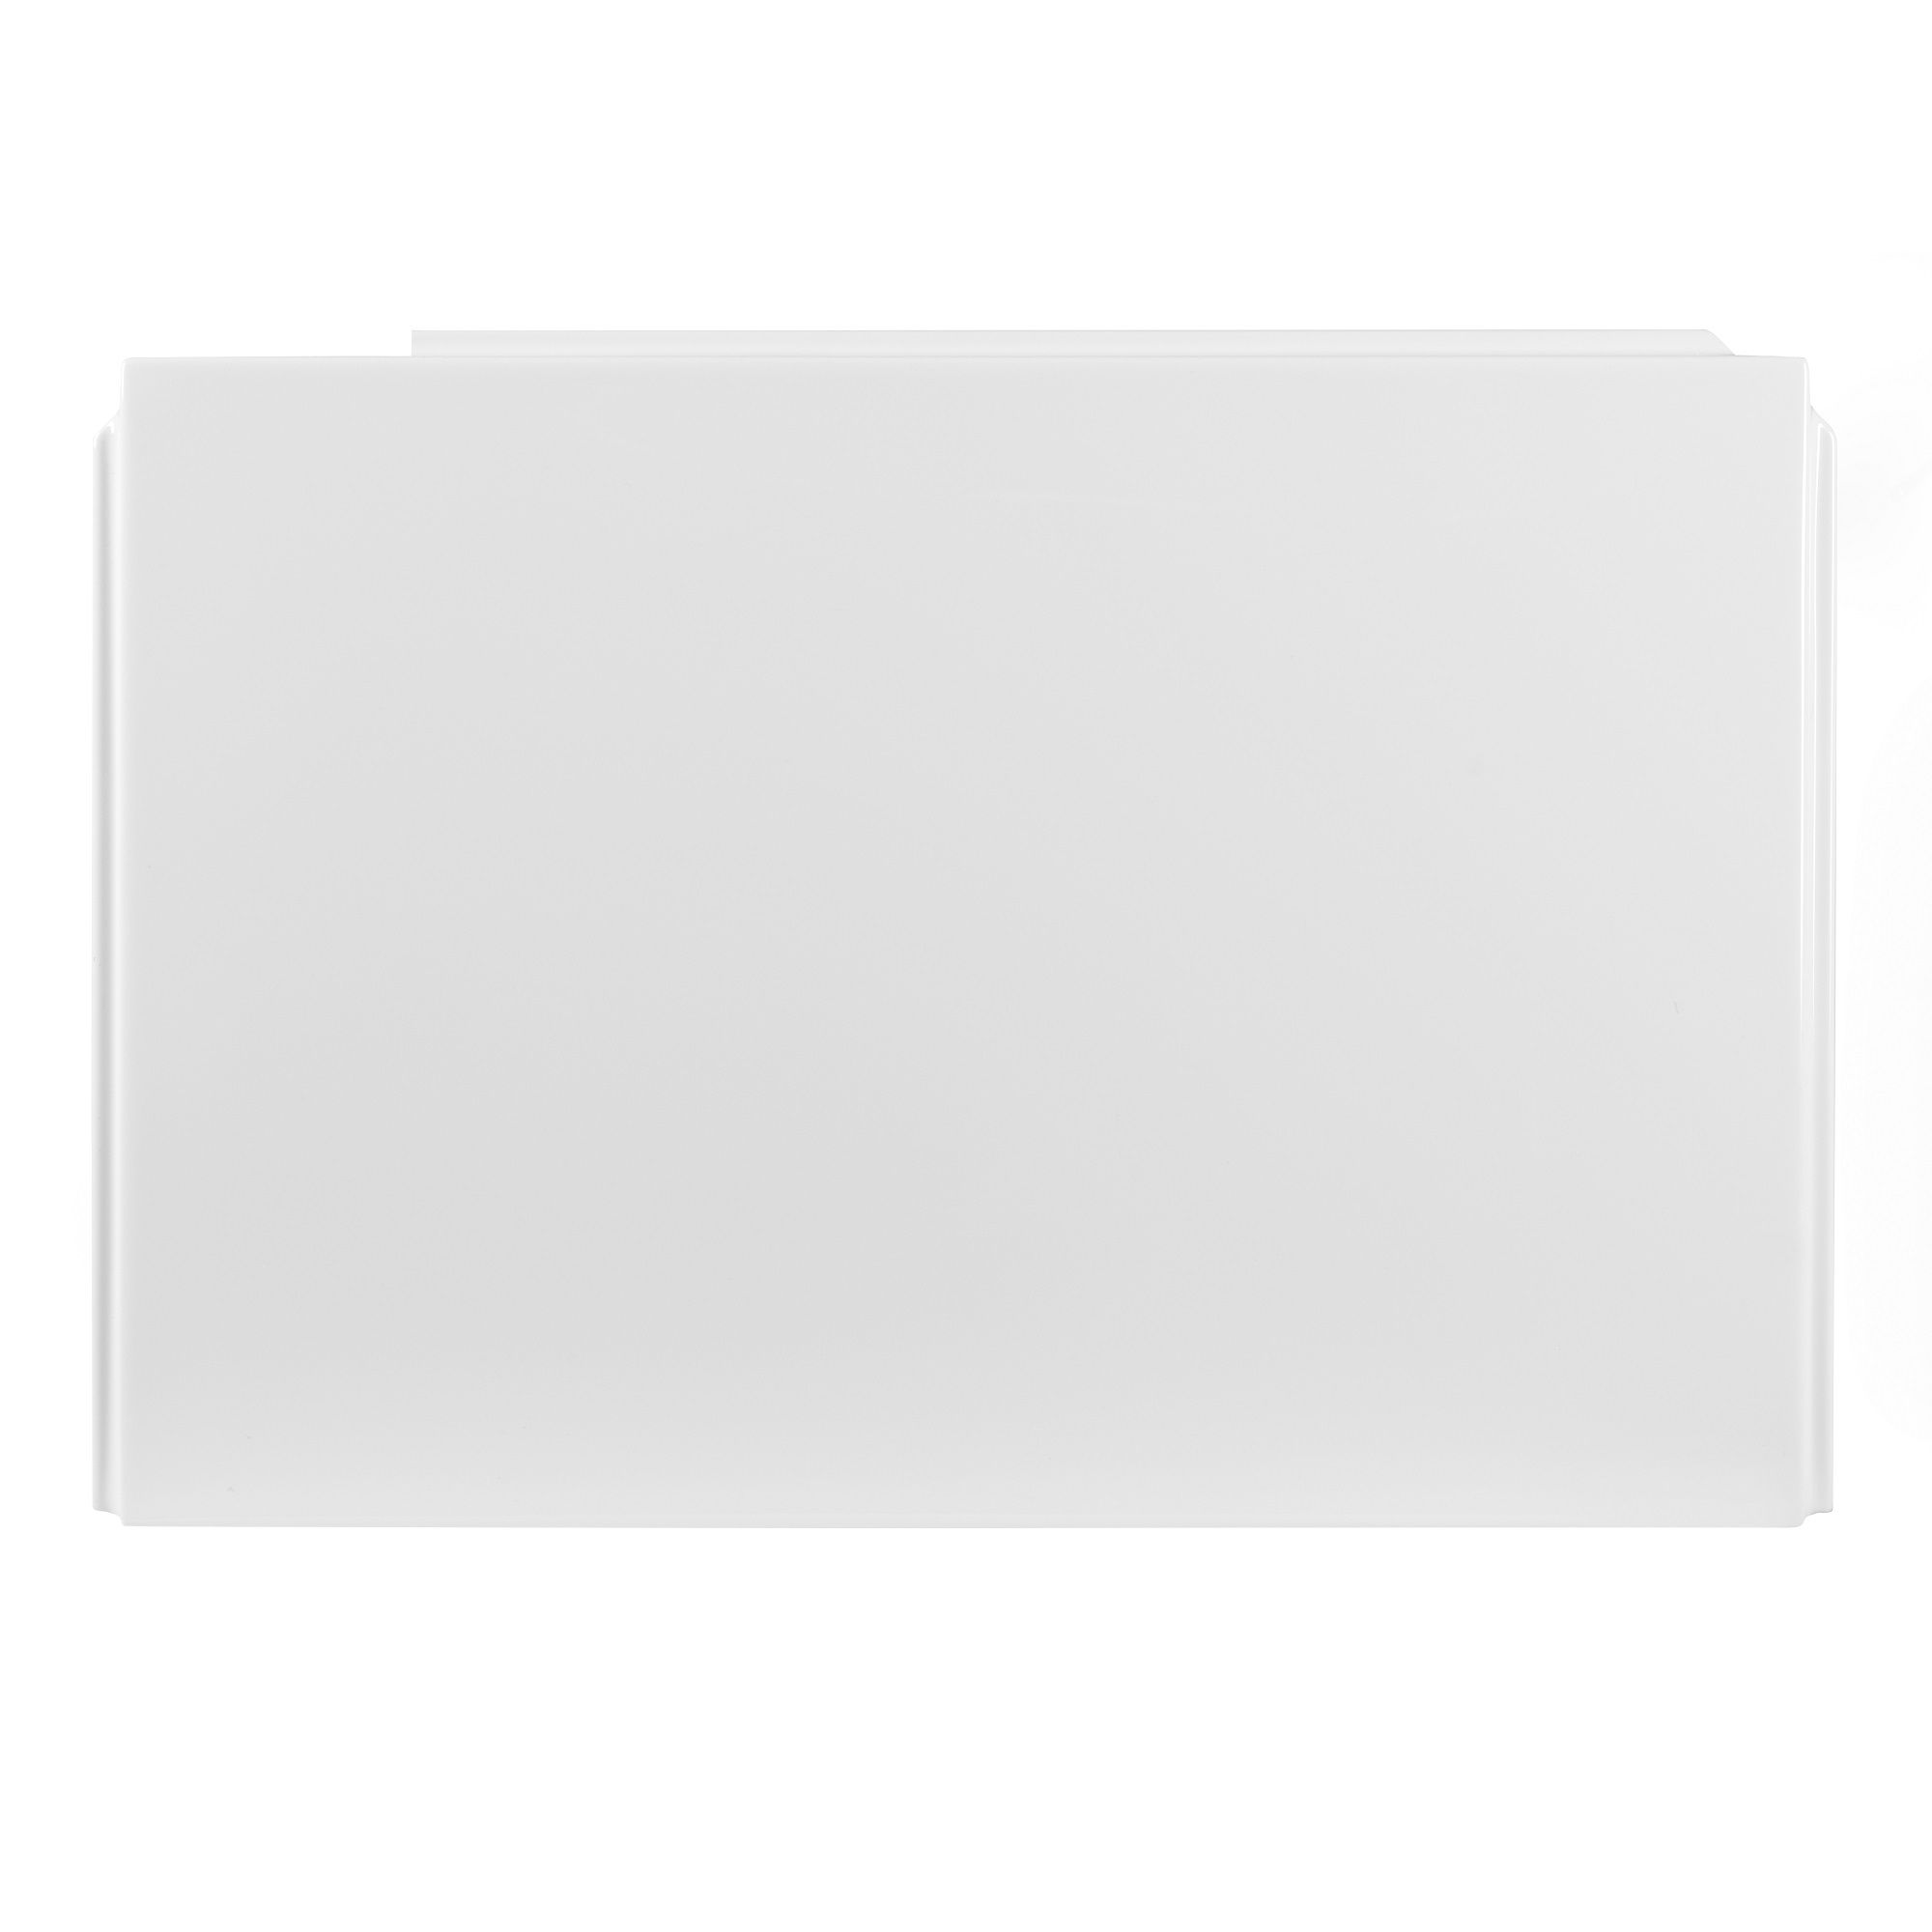 Cooke Lewis Spacesaver White Curved Front Bath Panel W 1700mm Departments Diy At B Q